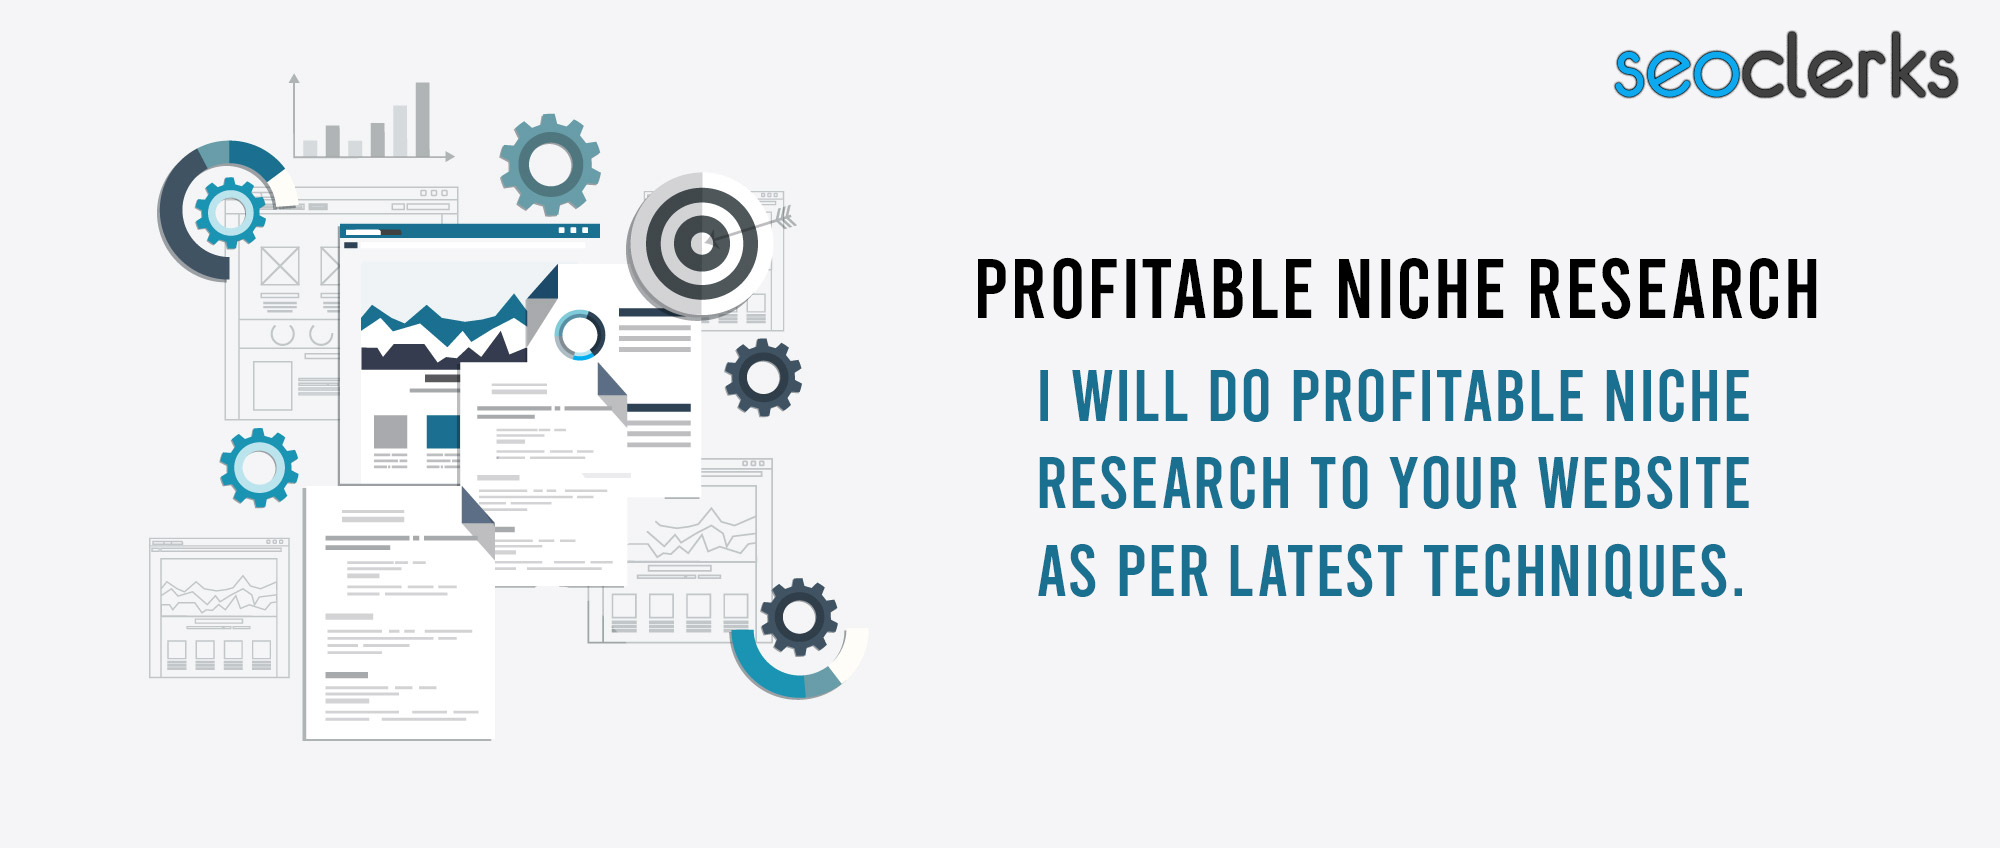 I will do profitable niche research related to your website